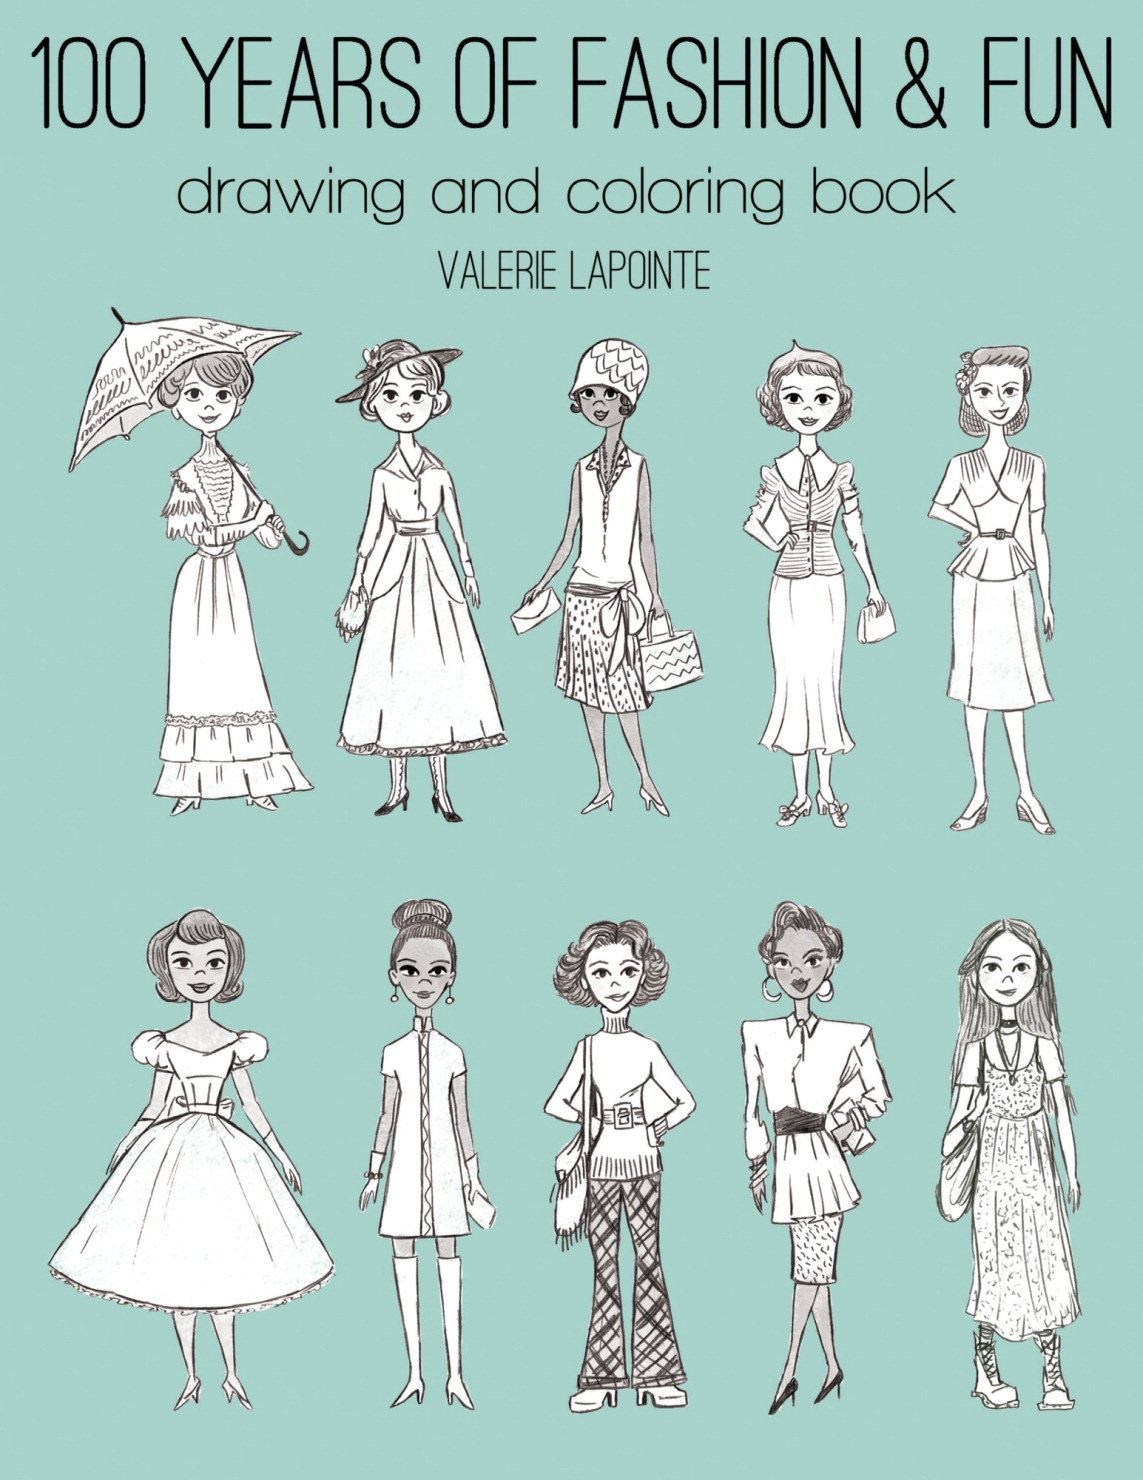 General's, 100 Years of Fashion and Fun Drawing and Coloring Book